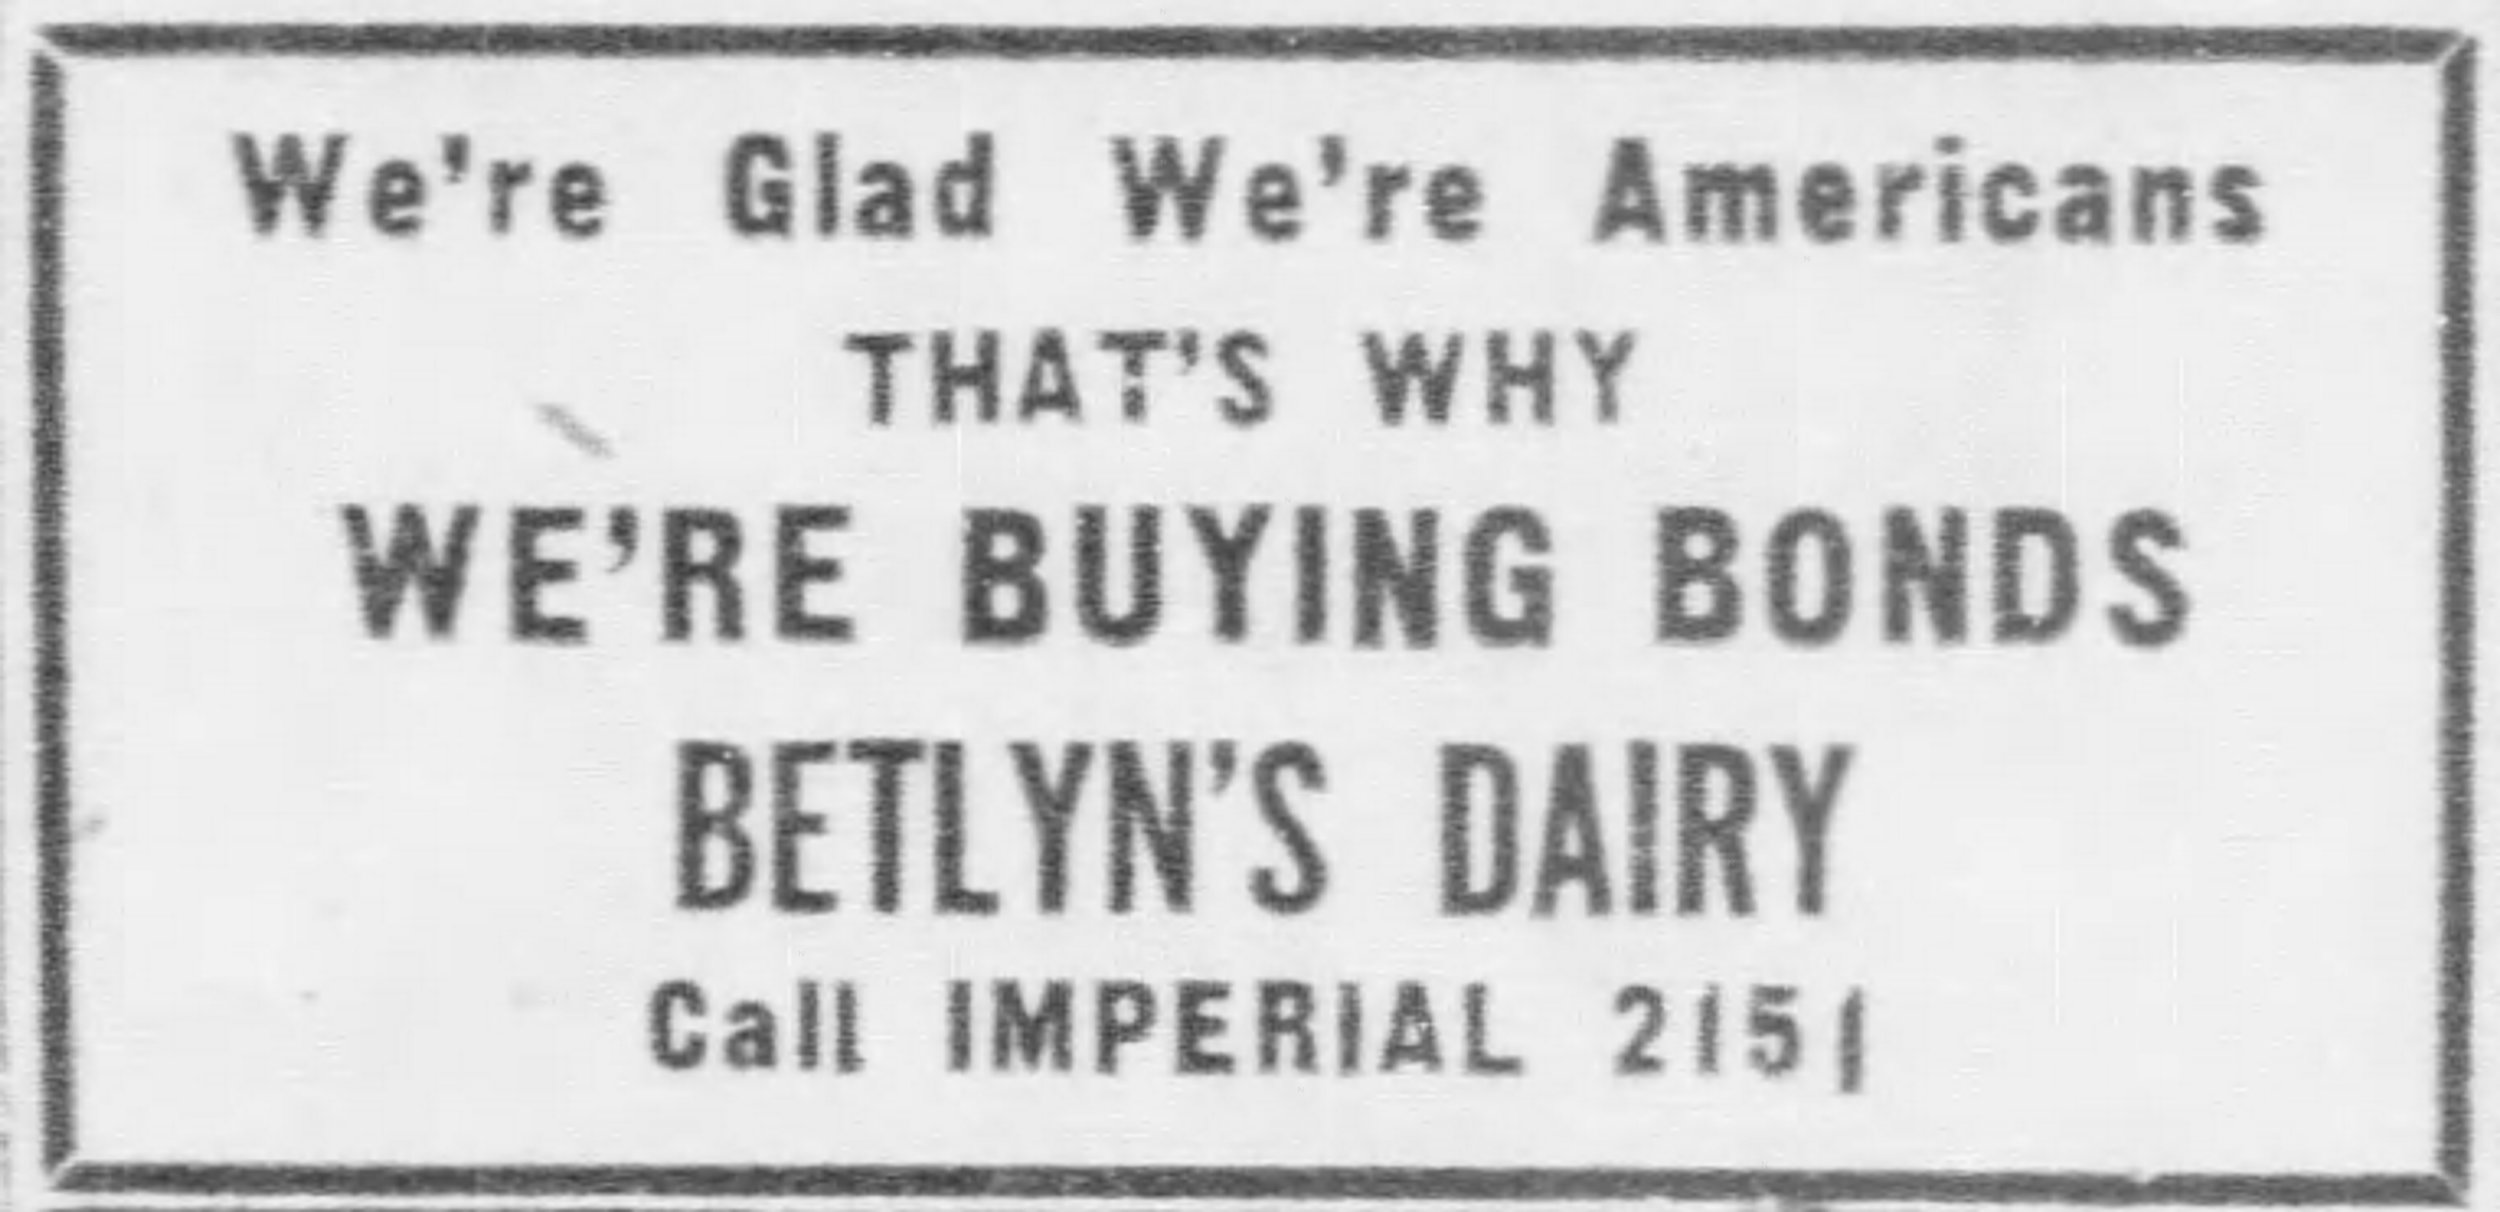 Pittsburgh Post Gazette, July 17, 1942 (vol. 15, no. 301, p. 21).